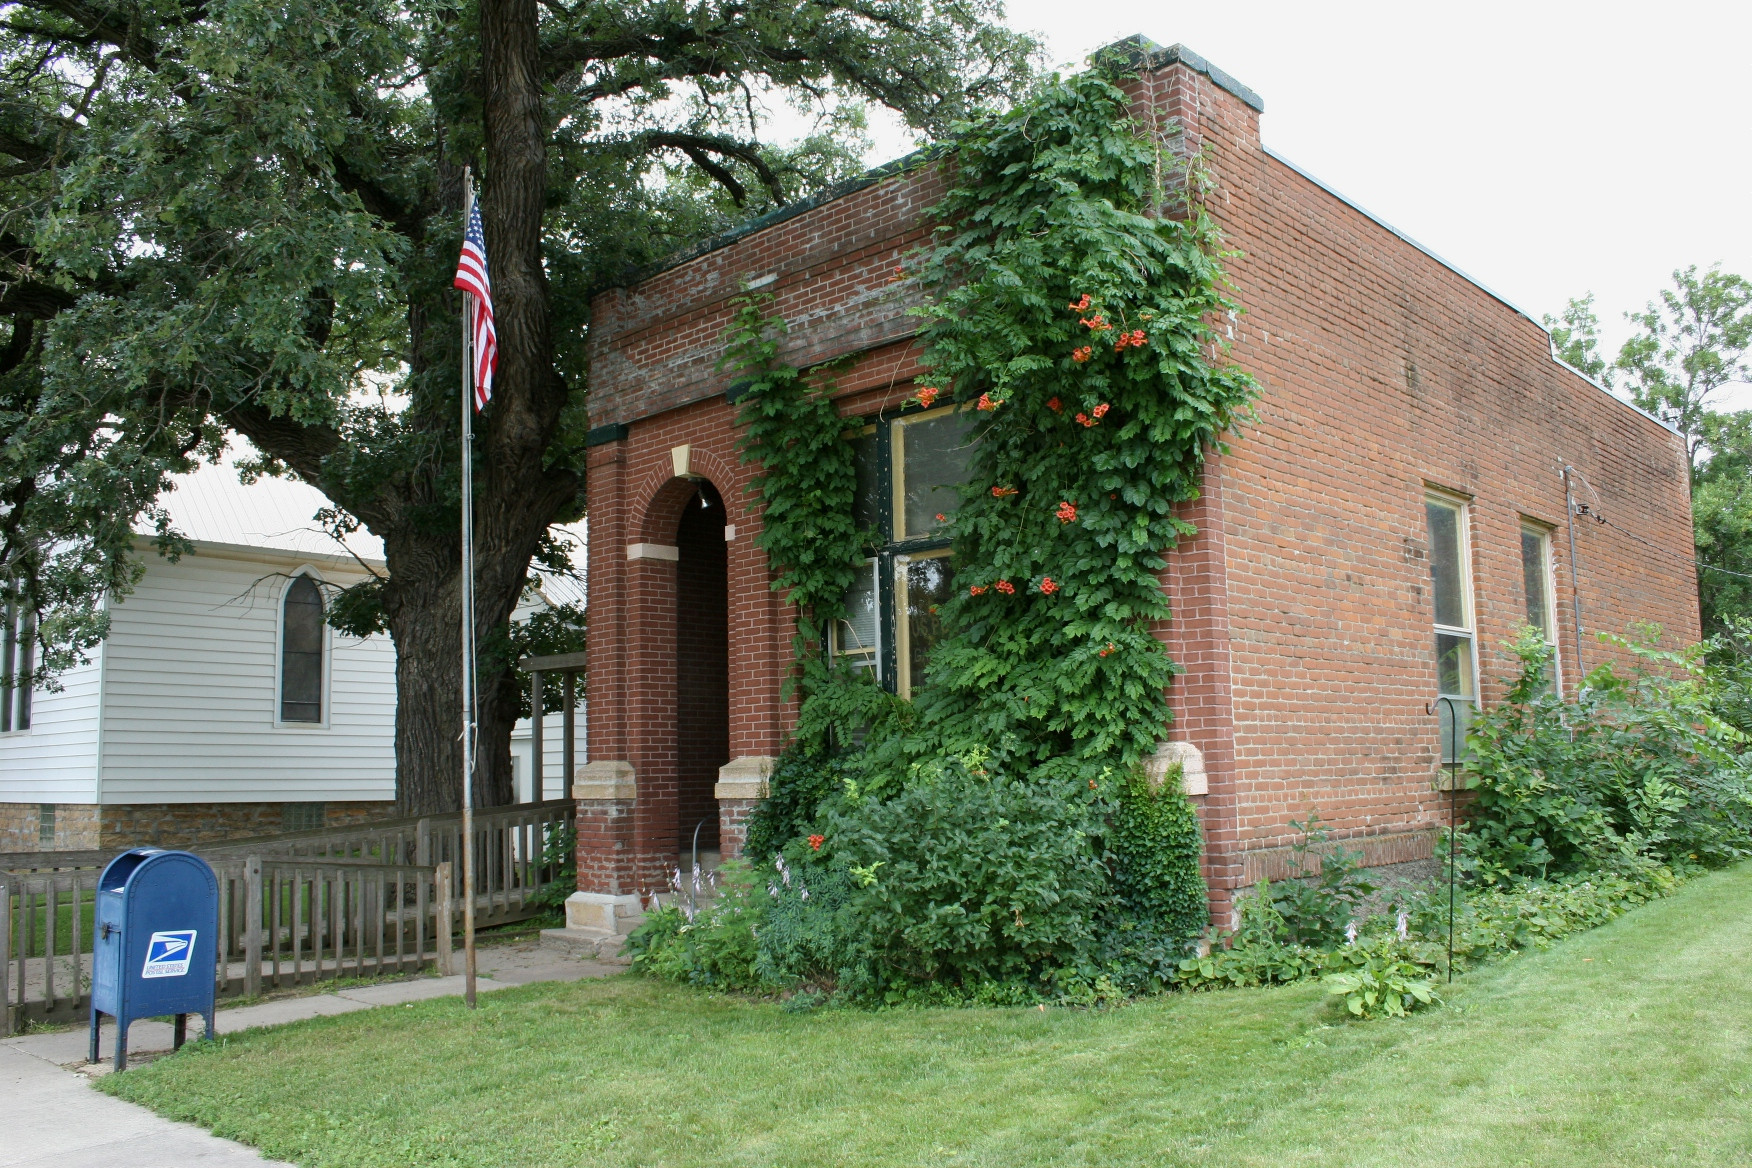 Best ideas about Garden City Post Office . Save or Pin Zip code Now.